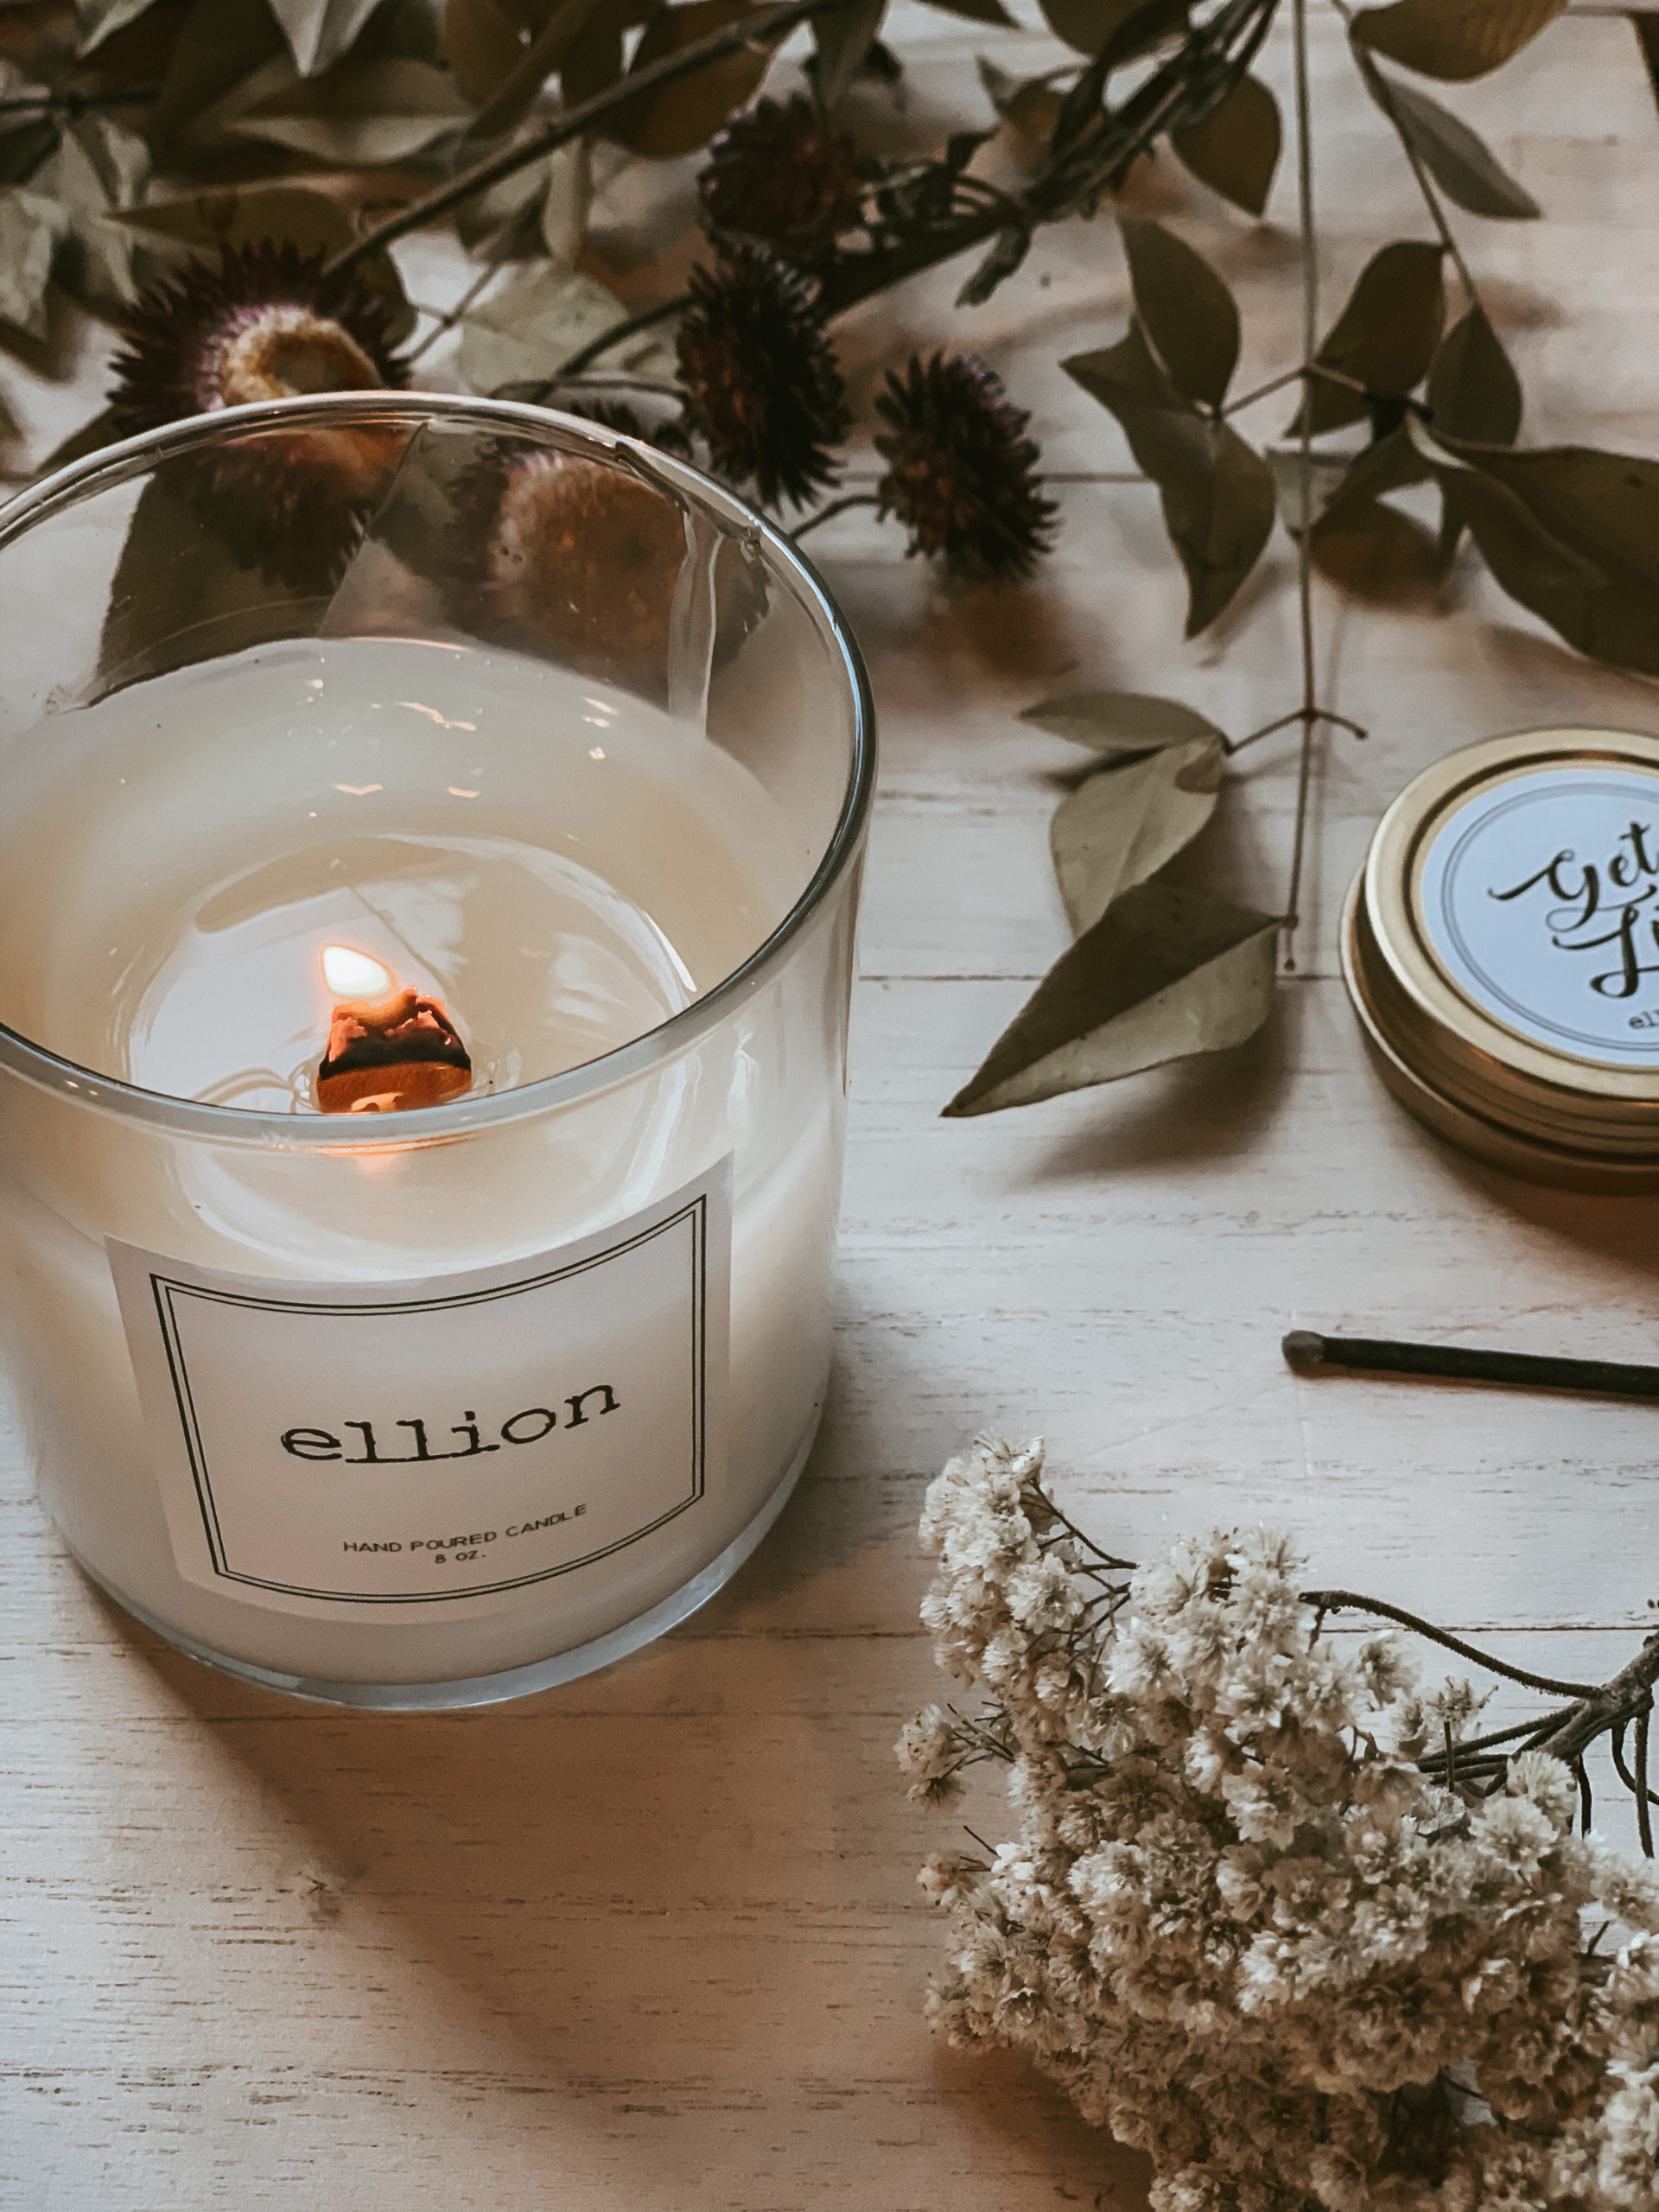 Ellion wood wick candles